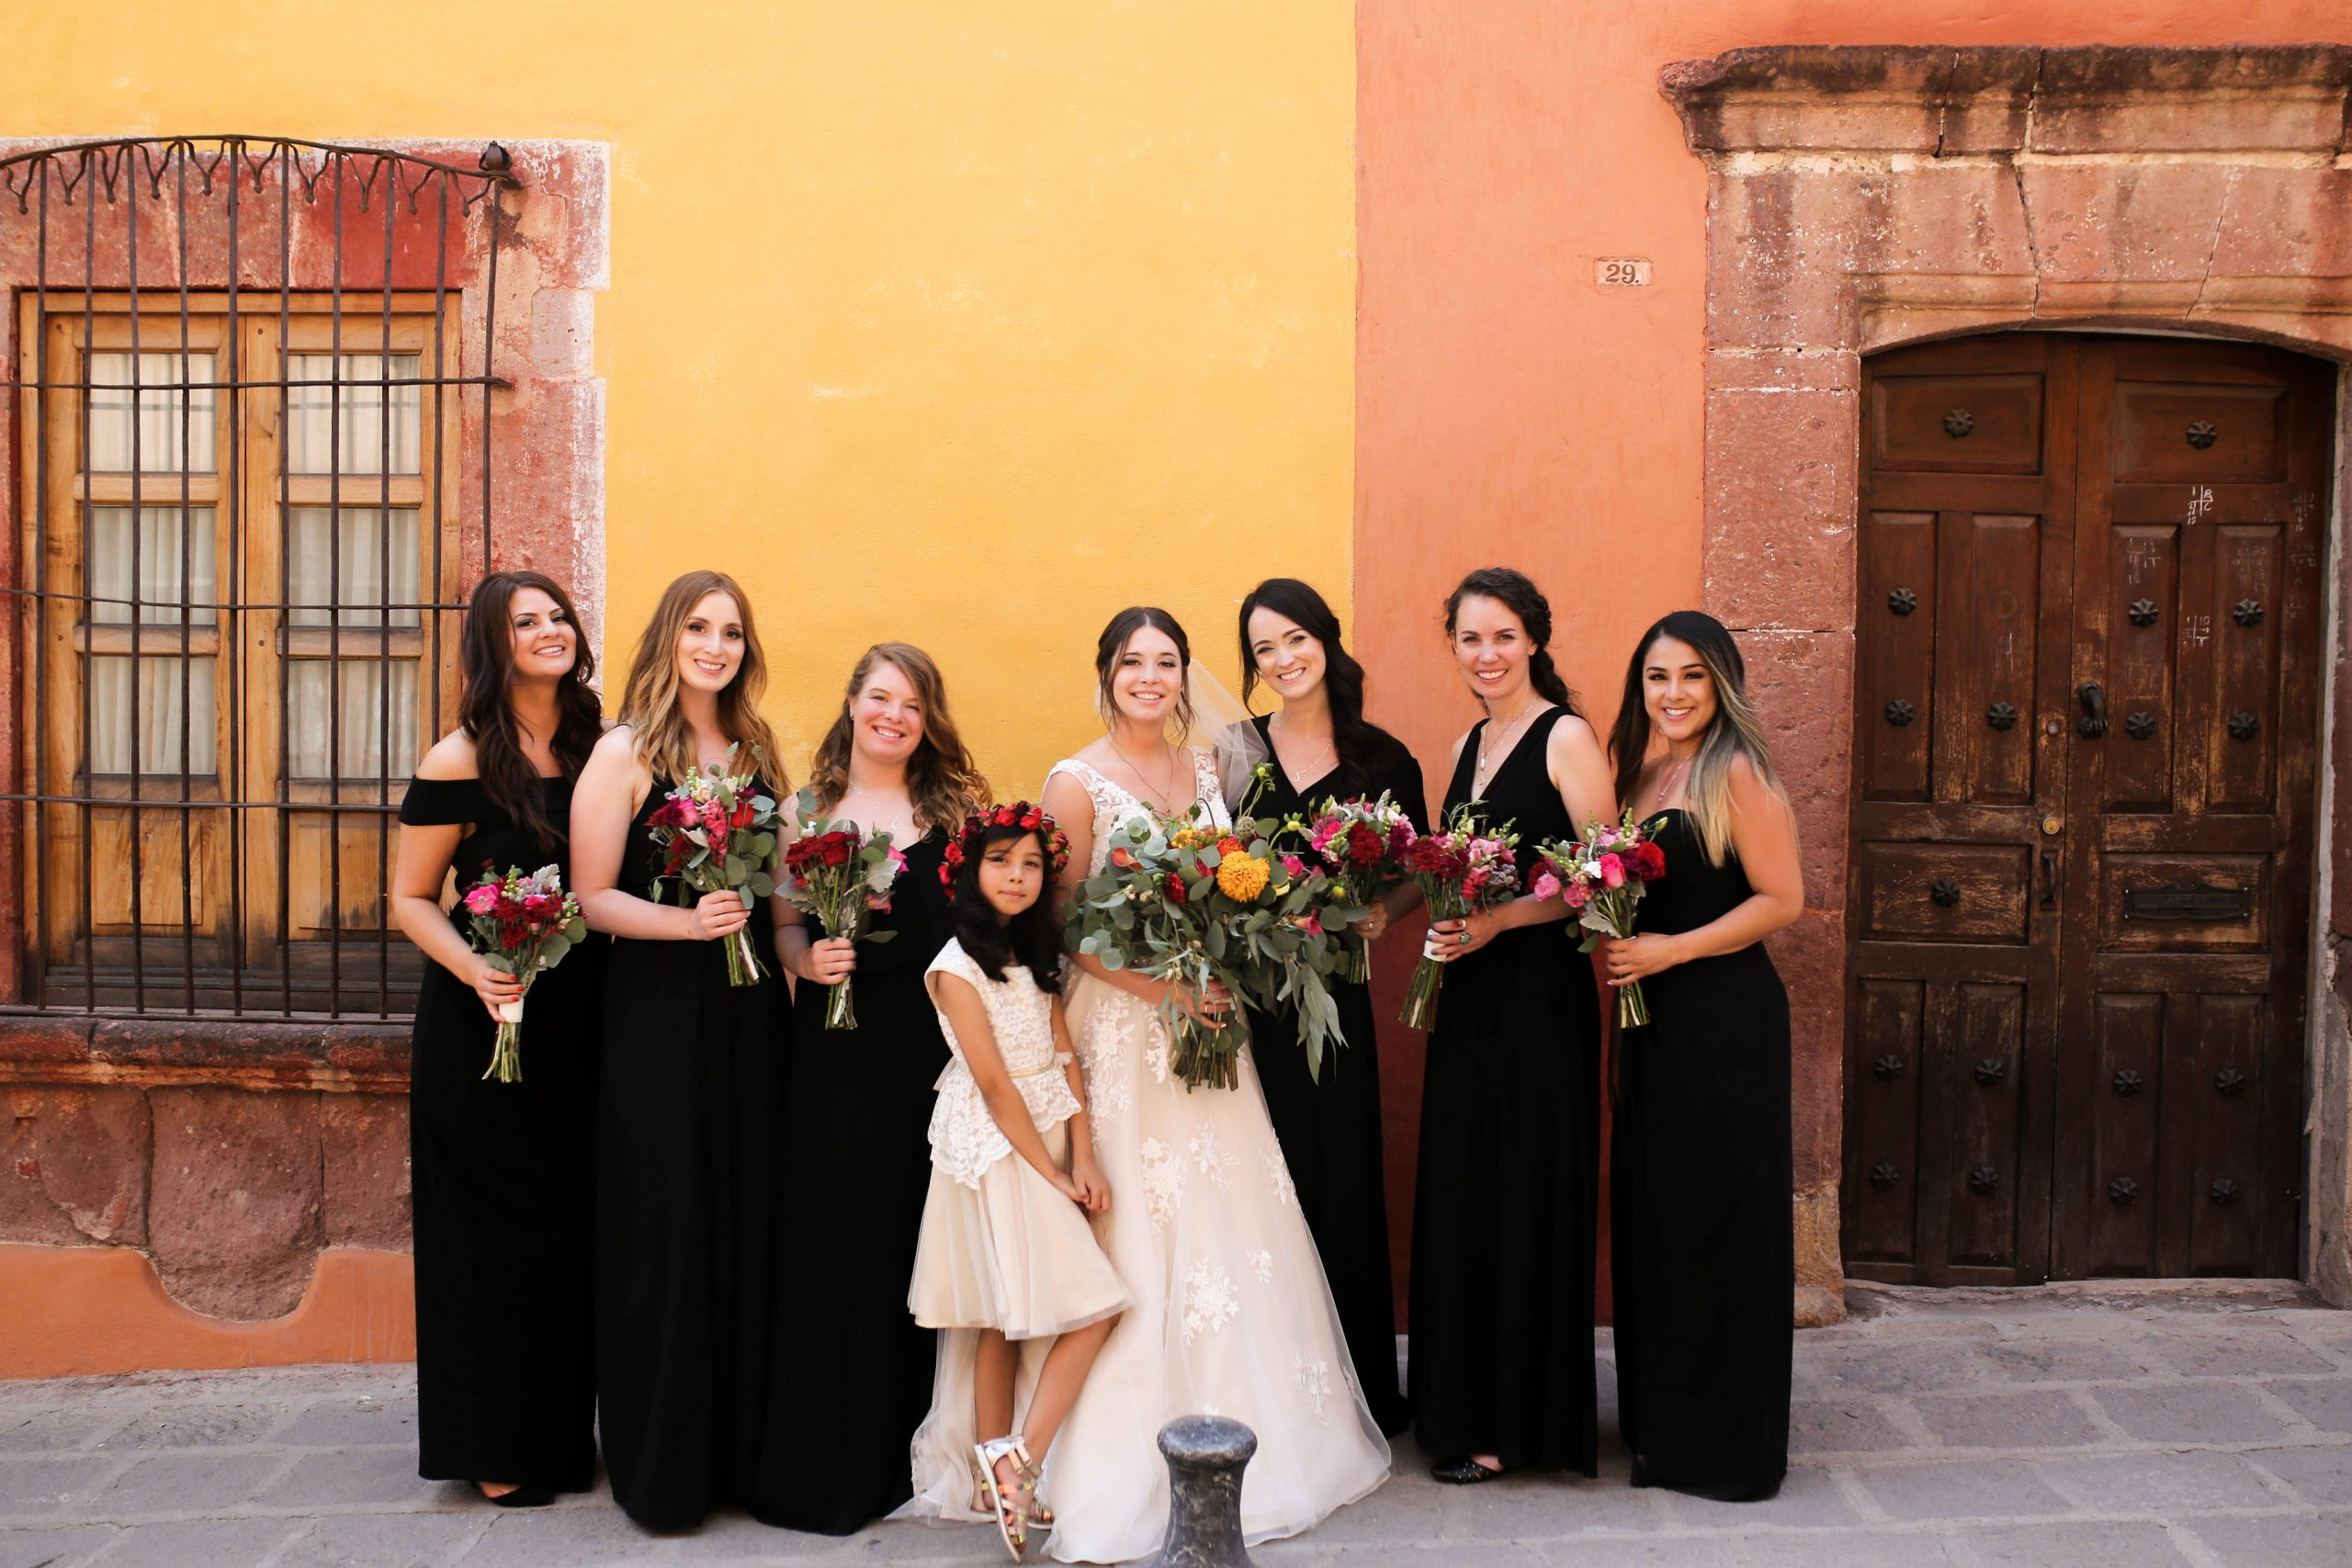 Bride With Bridesmaids Wearing Black Bridesmaid Dress Ideas at Mexican Wedding